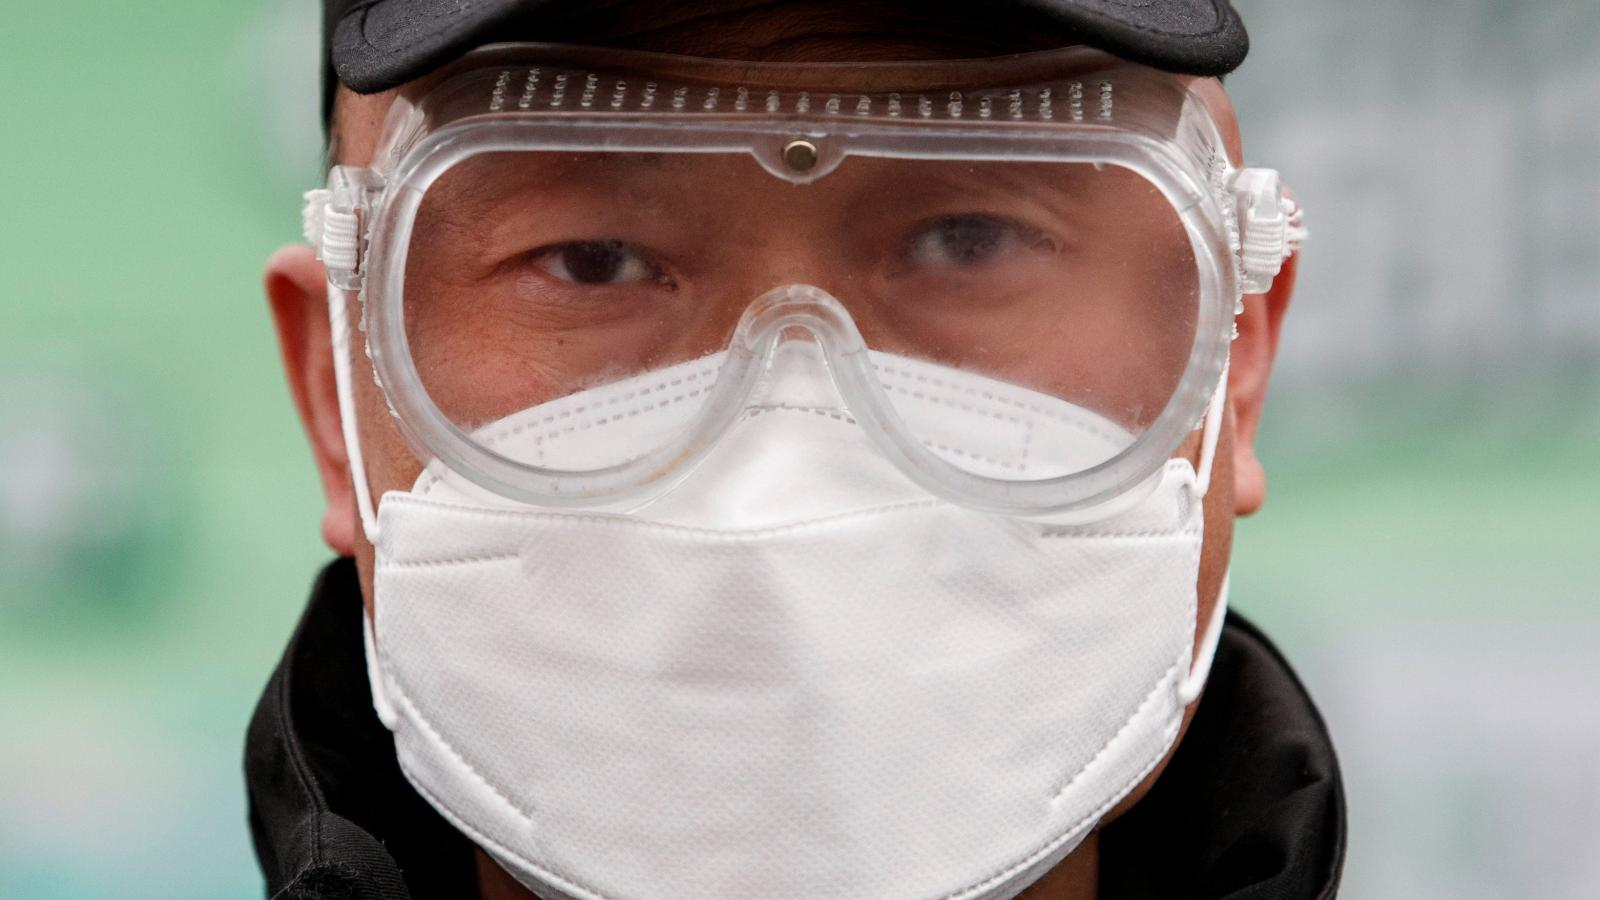 Beijing S 10 Rules For Curbing Coronavirus In The Workplace